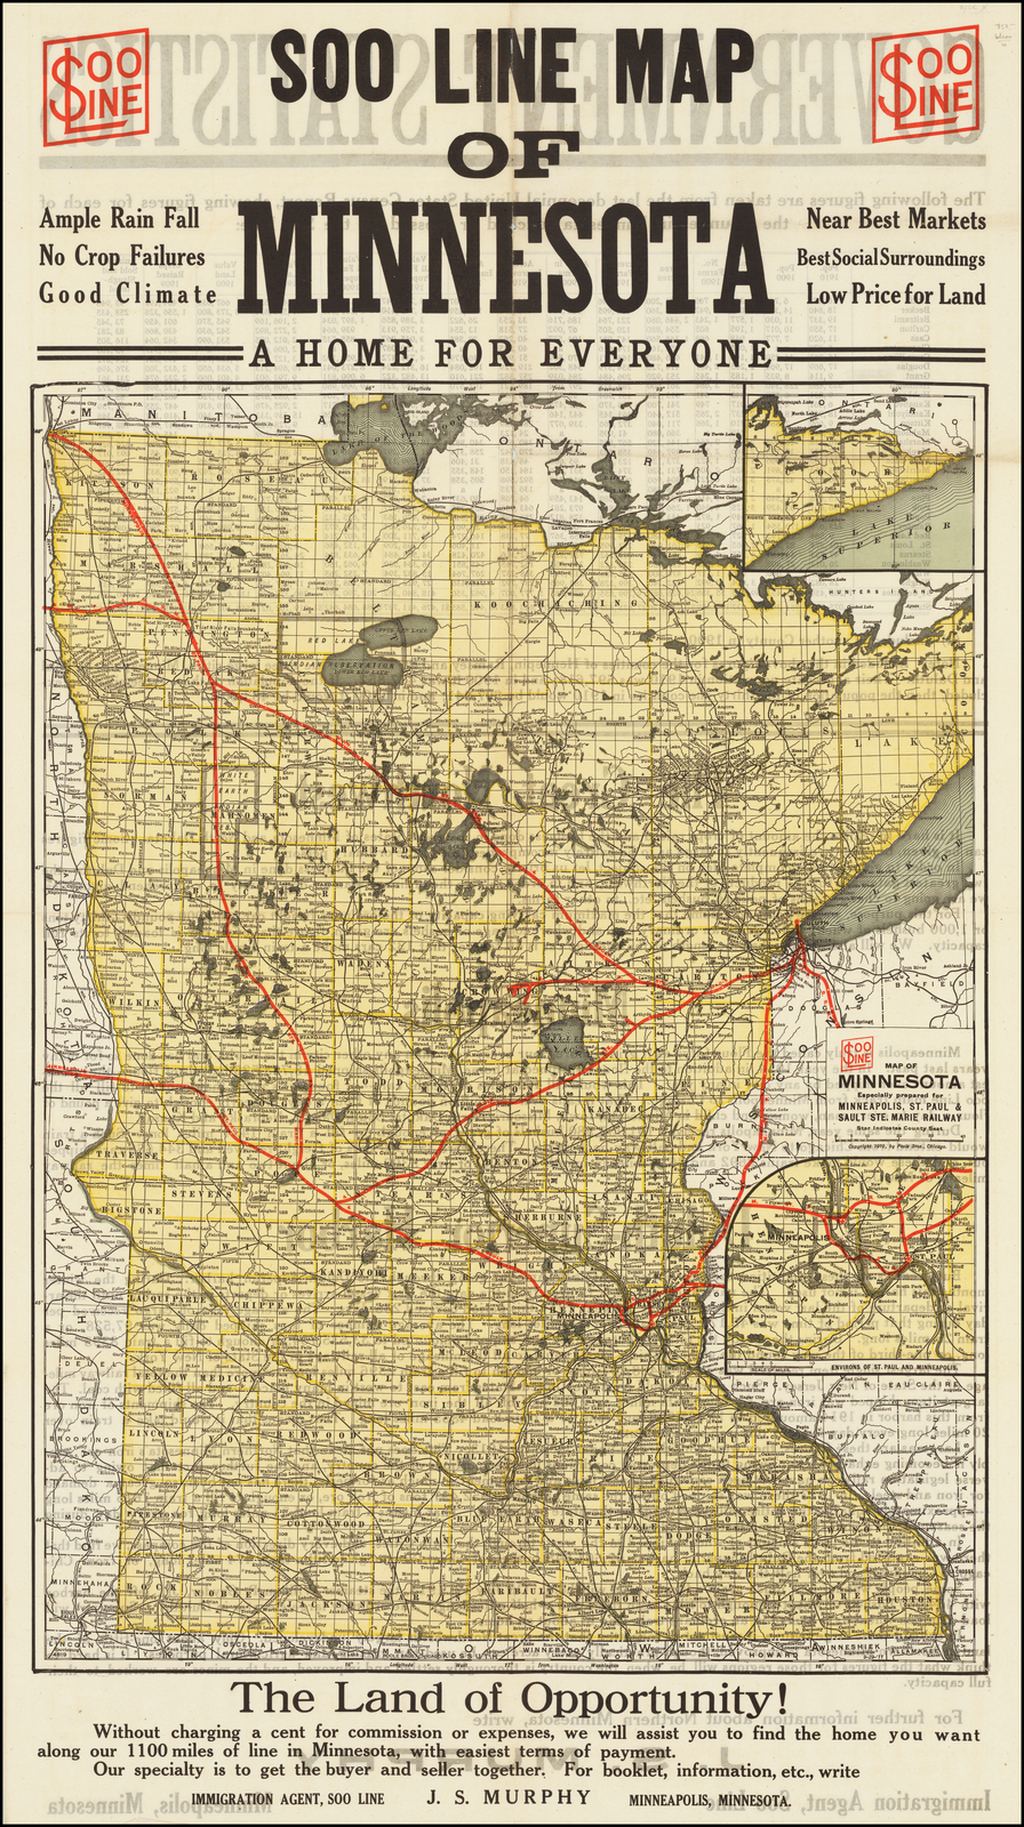 Soo Line Map of Minnesota -- A Home For Everyone  By Poole Brothers